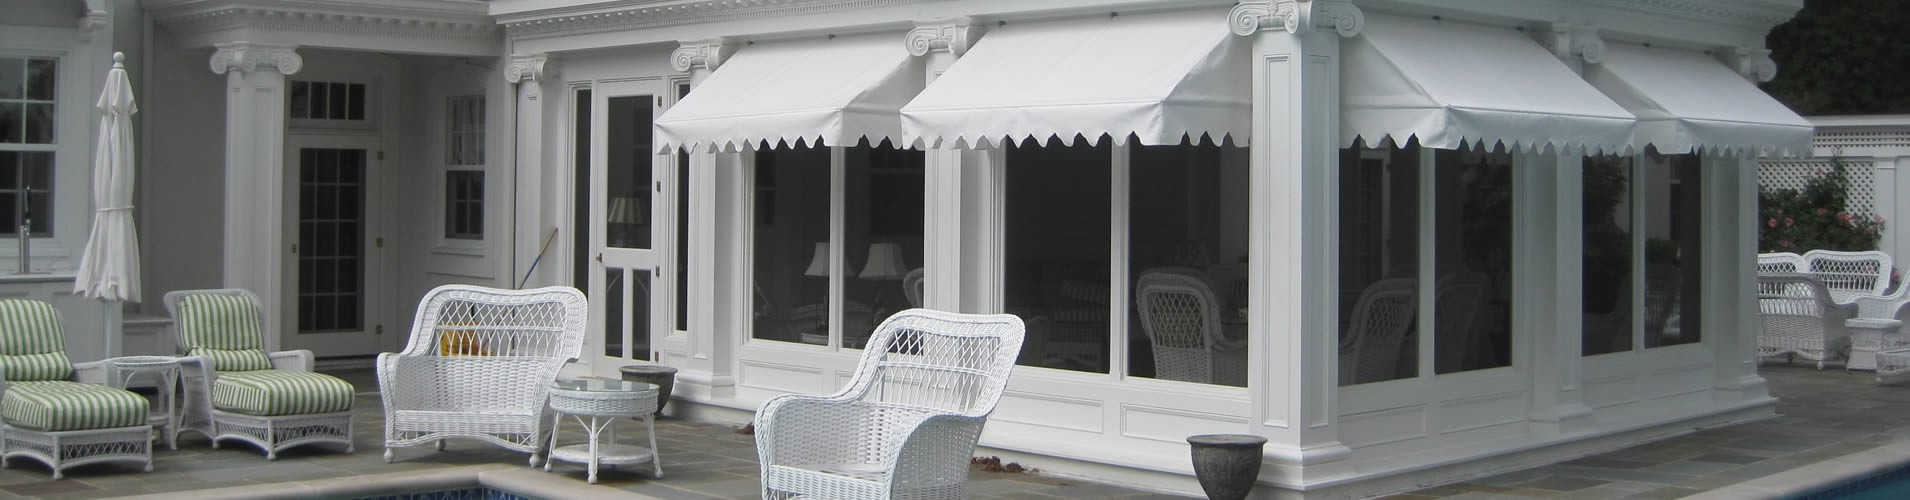 Why Choose Premier Rollout Awnings For Your Florida Home